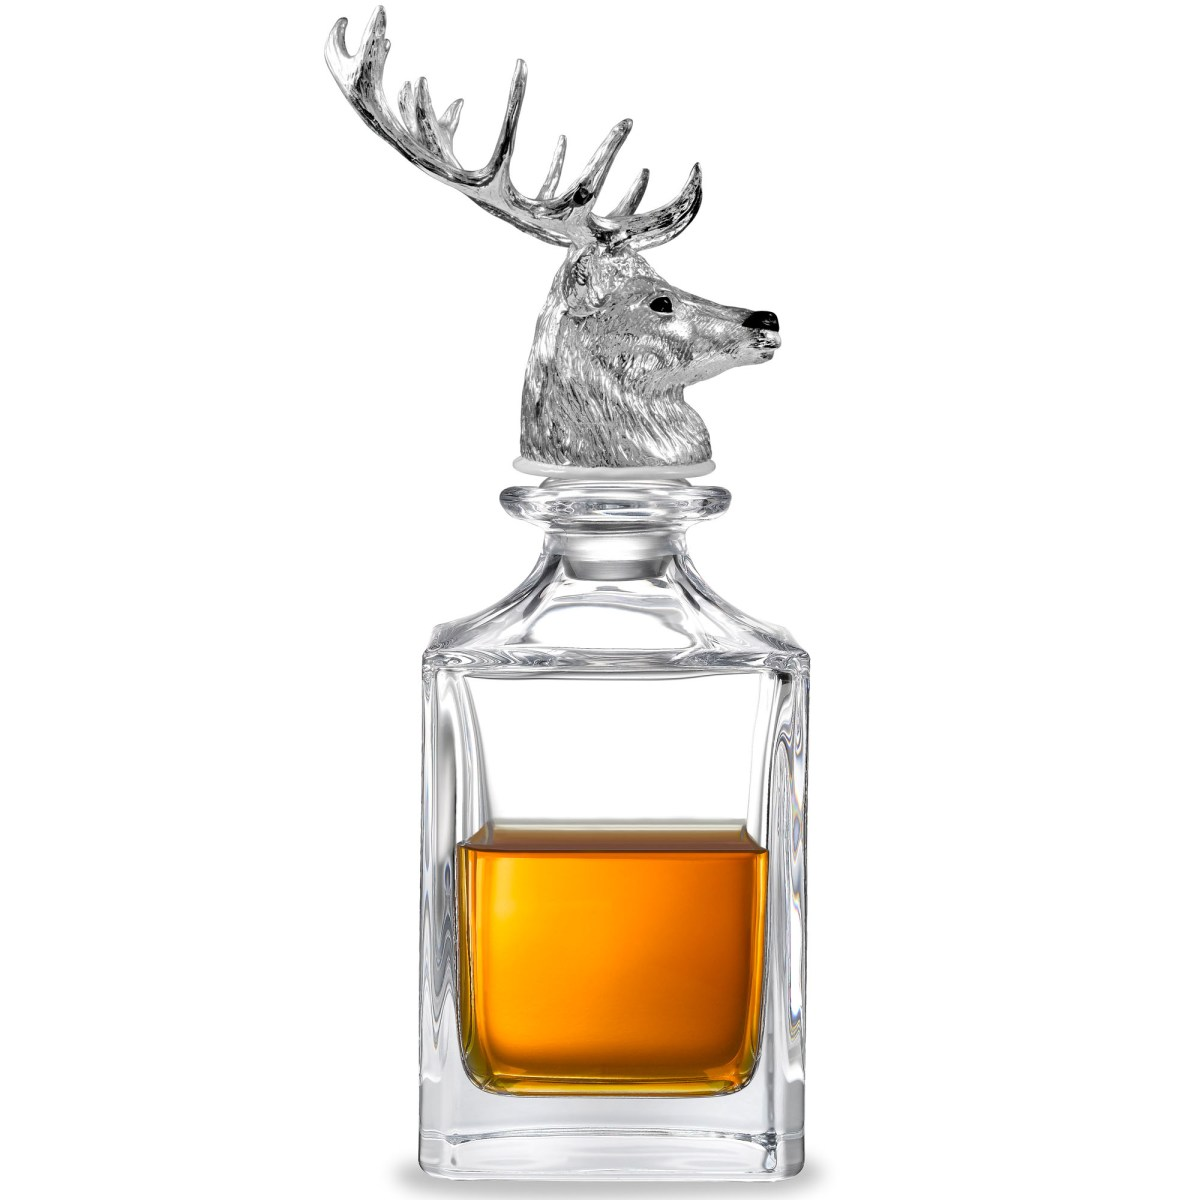 5 Reasons To Own A Scotch Decanter The Scotch Journal